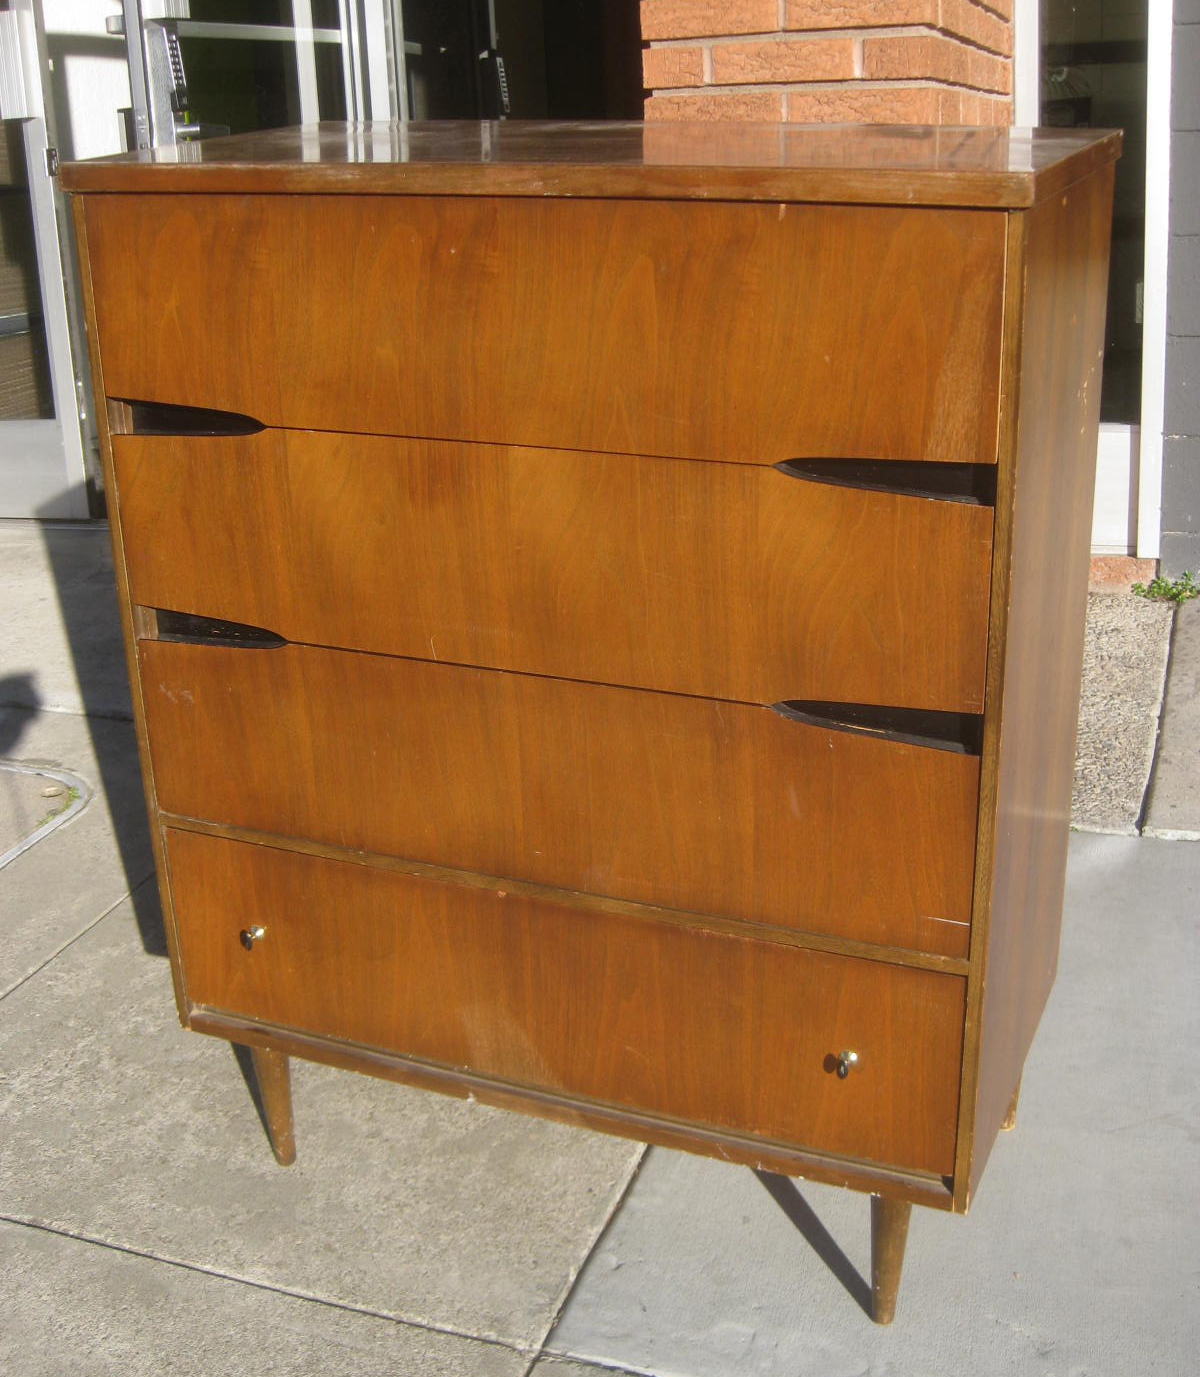 Sold   Danish Modern Chest Of Drawers   $90